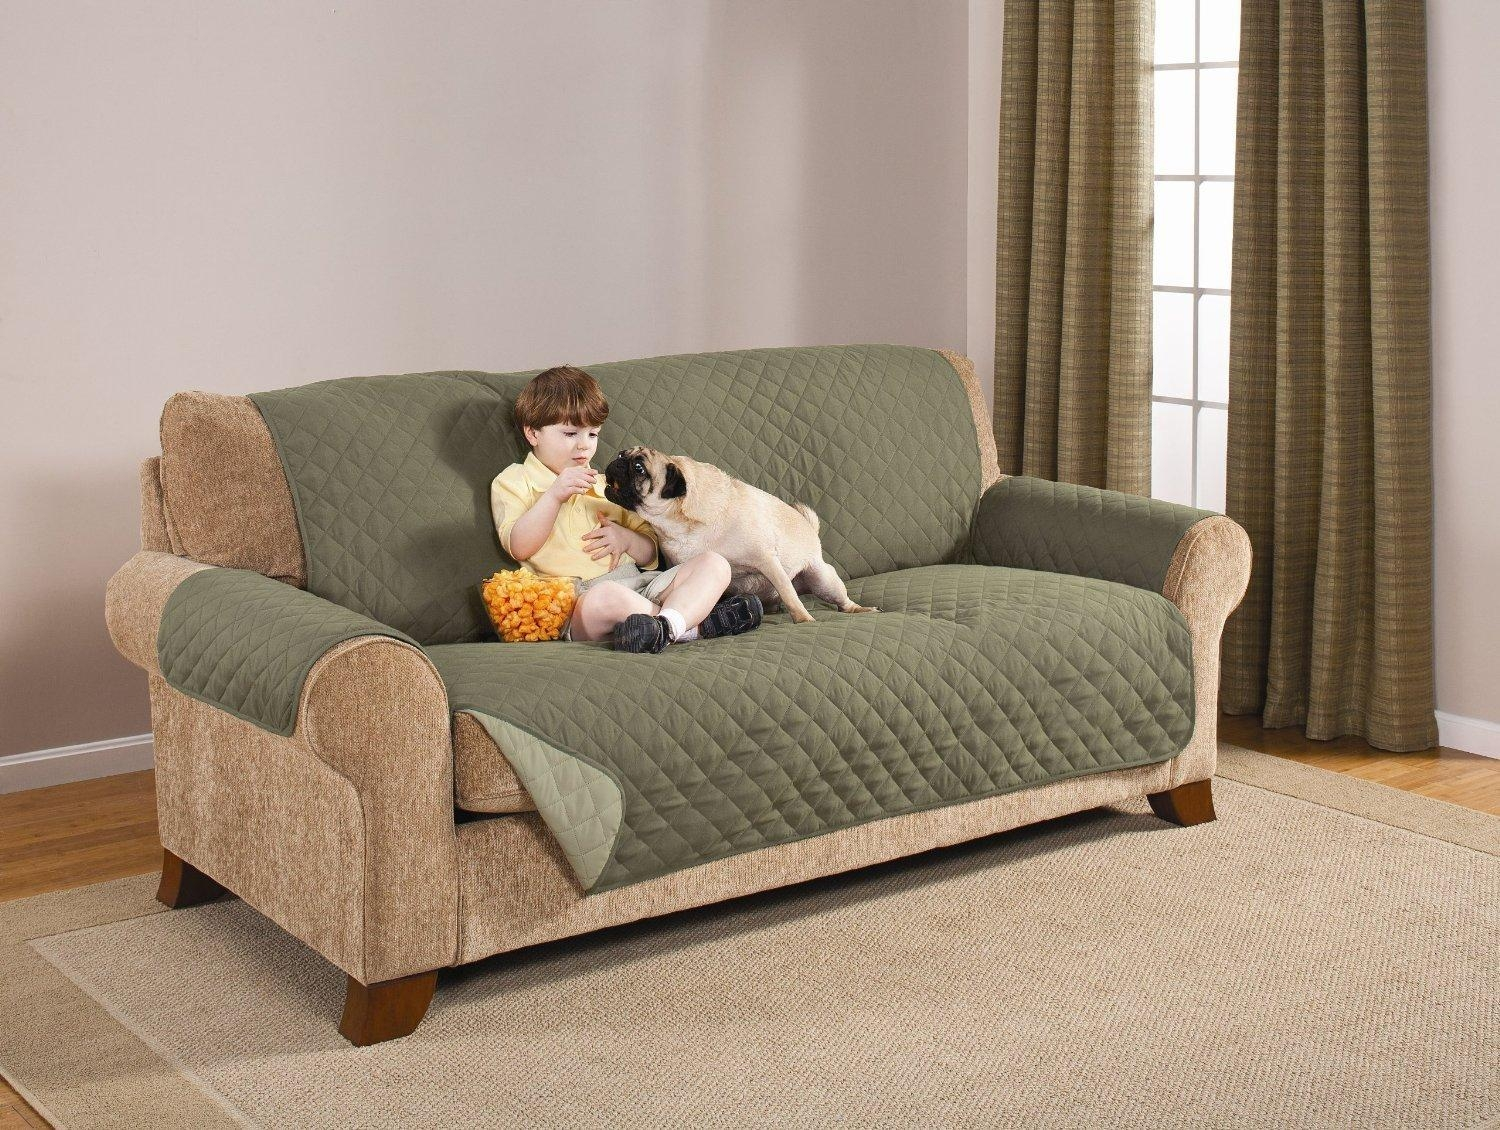 Sofas Center : Excellent Extra Wide Sectional Sofa On Types Of Inside Wide Sectional Sofa (View 8 of 20)